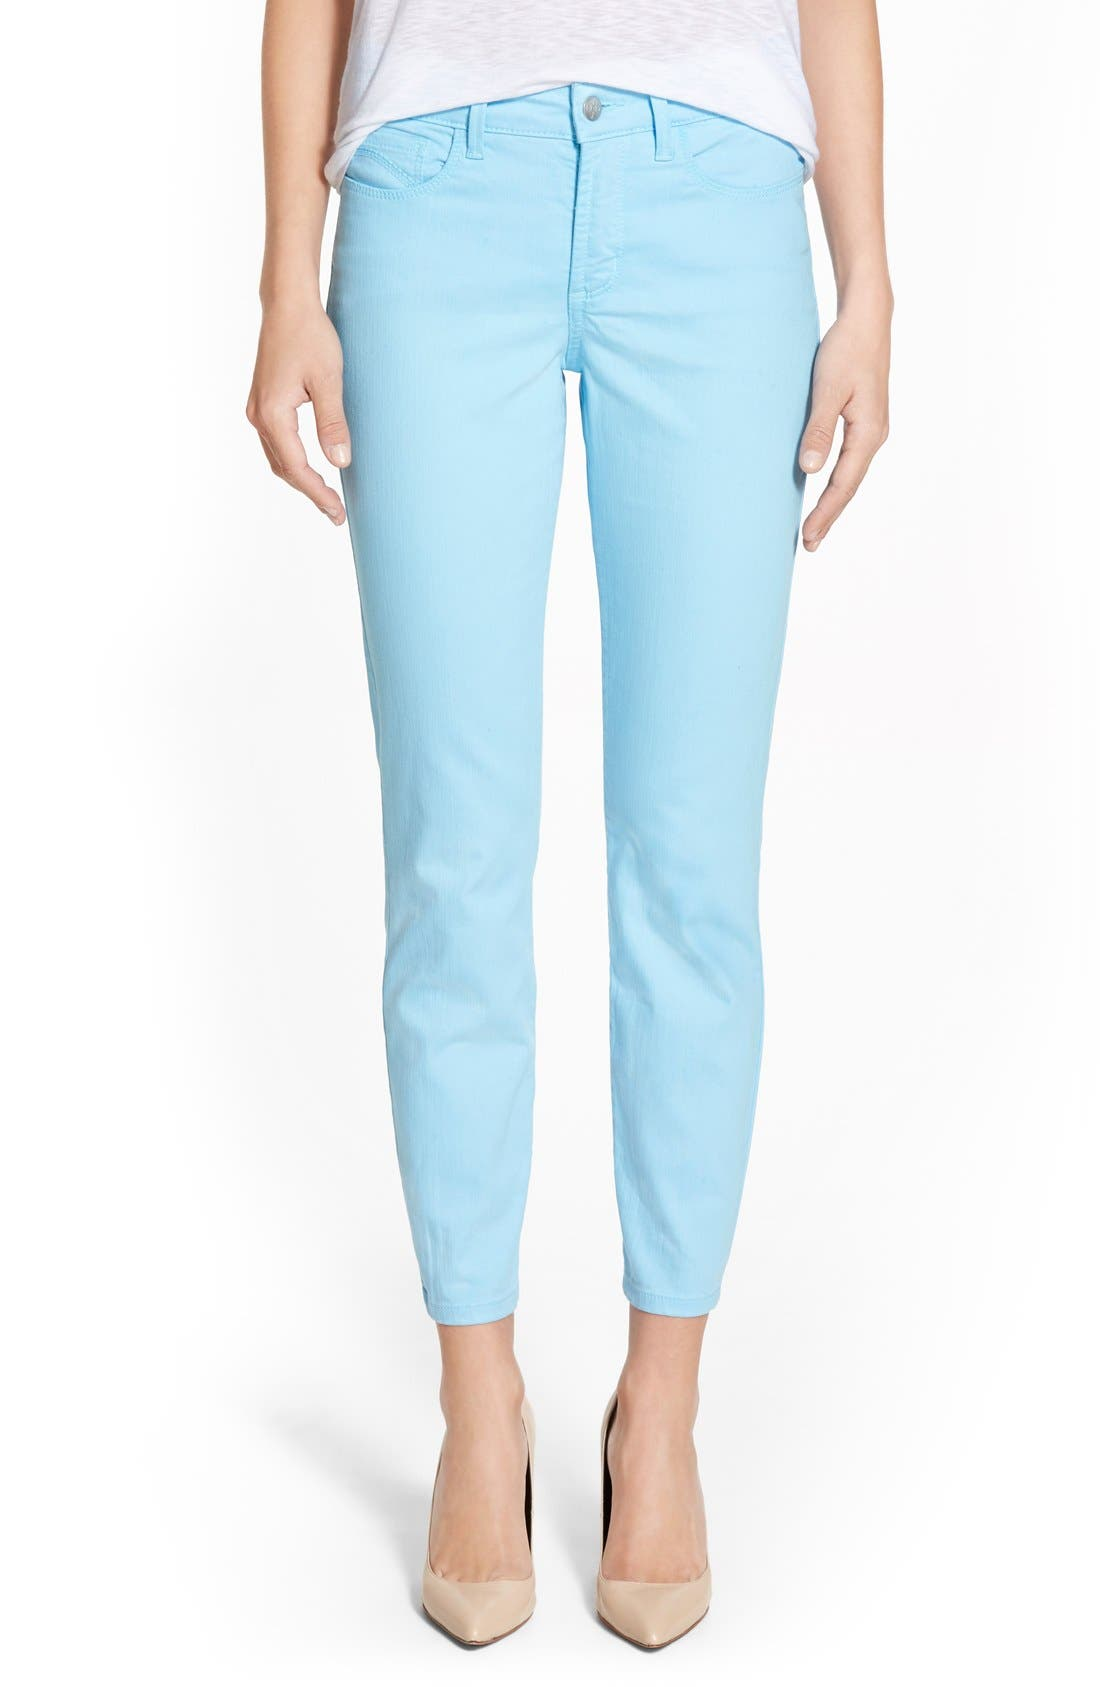 Main Image - NYDJ Clarissa Colored Stretch Ankle Skinny Jeans (Regular & Petite)